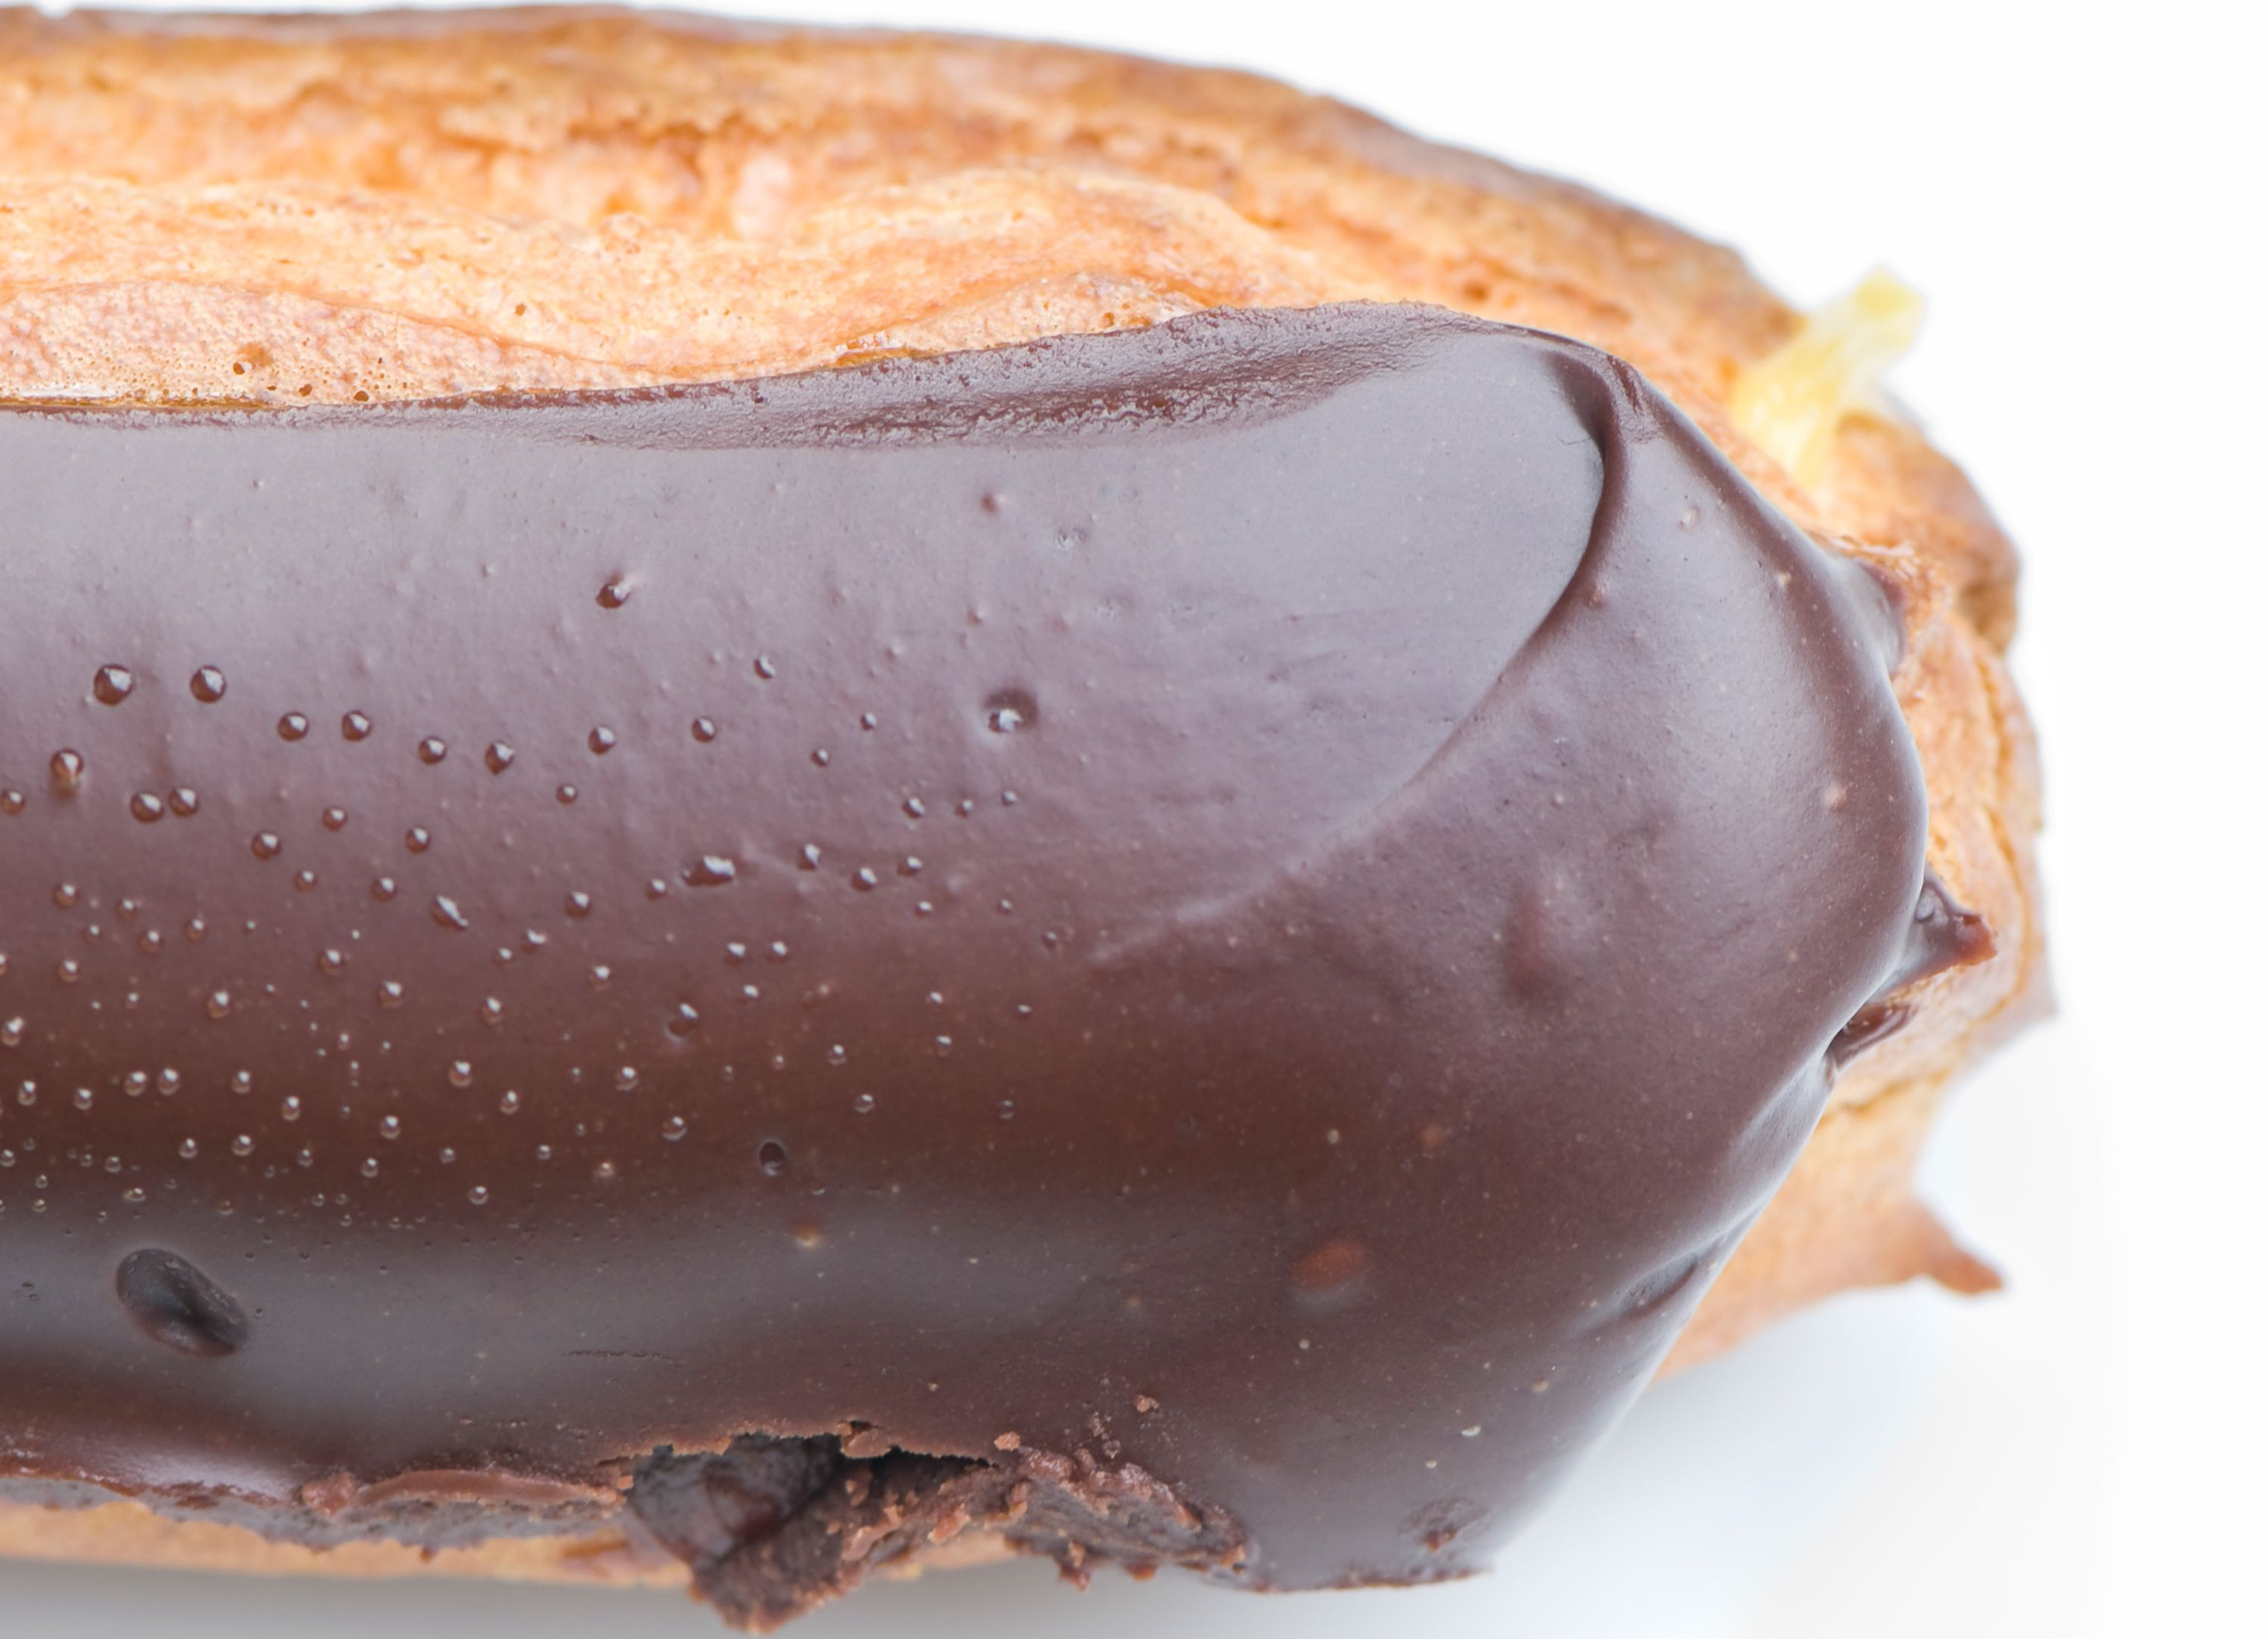 Asda Is Selling A Giant Chocolate Eclair For Just 5